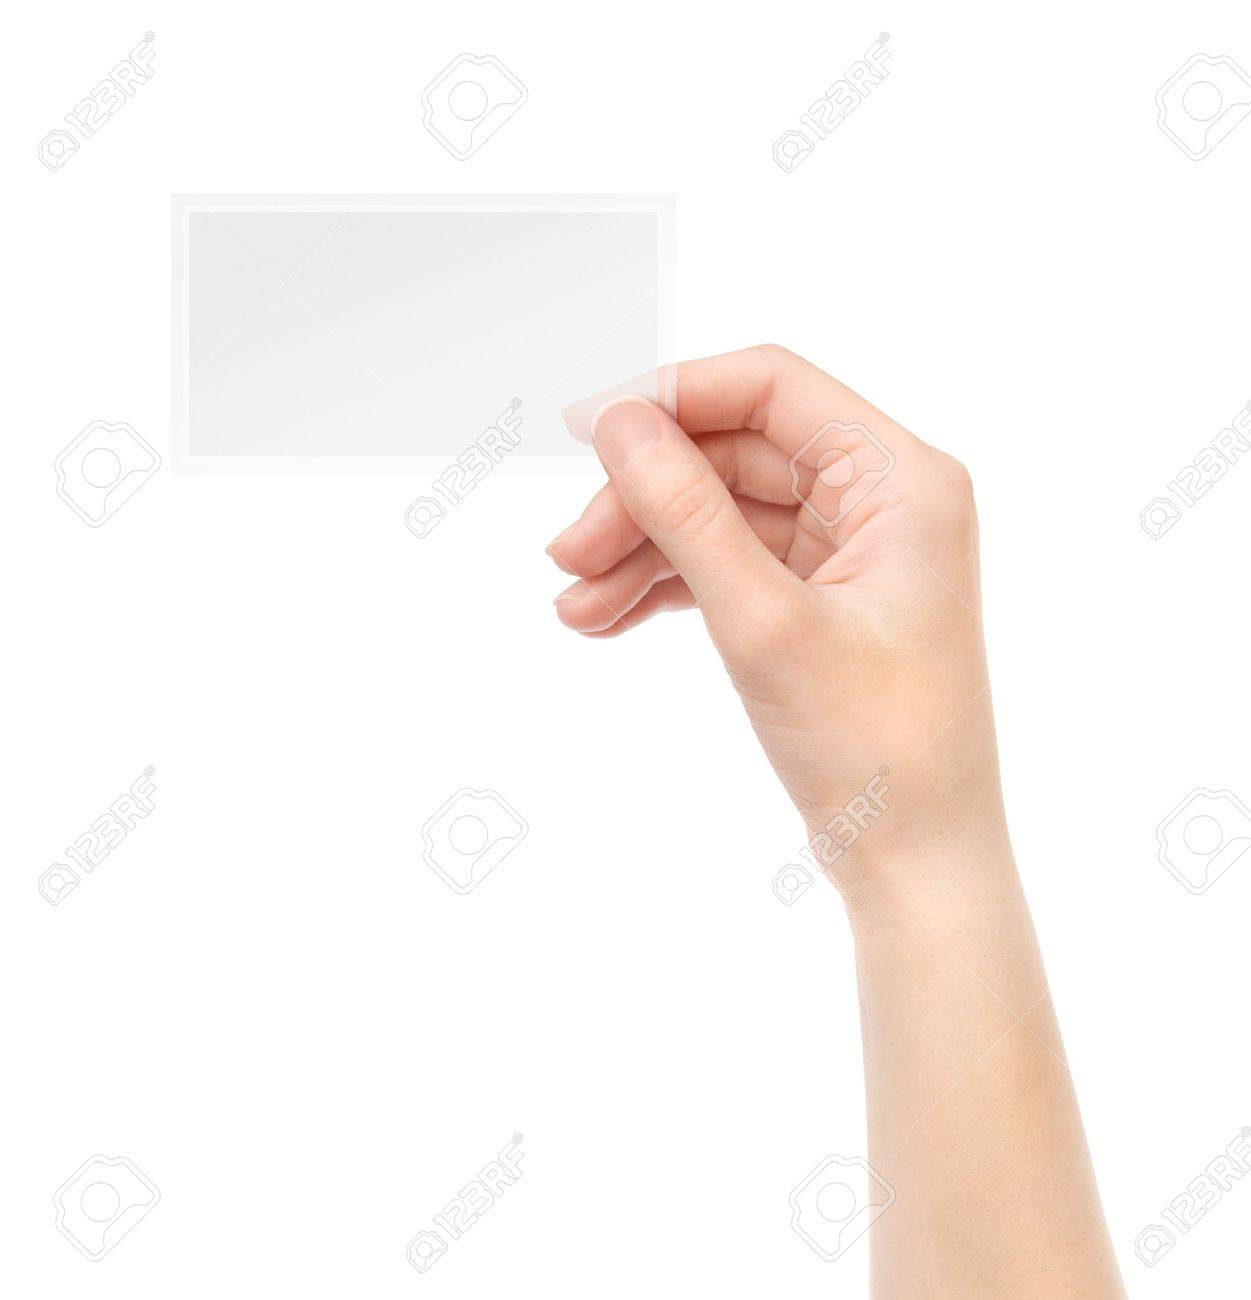 Female Hand Holding Blank Transparent Business Card In Isolated On White Stock Photo